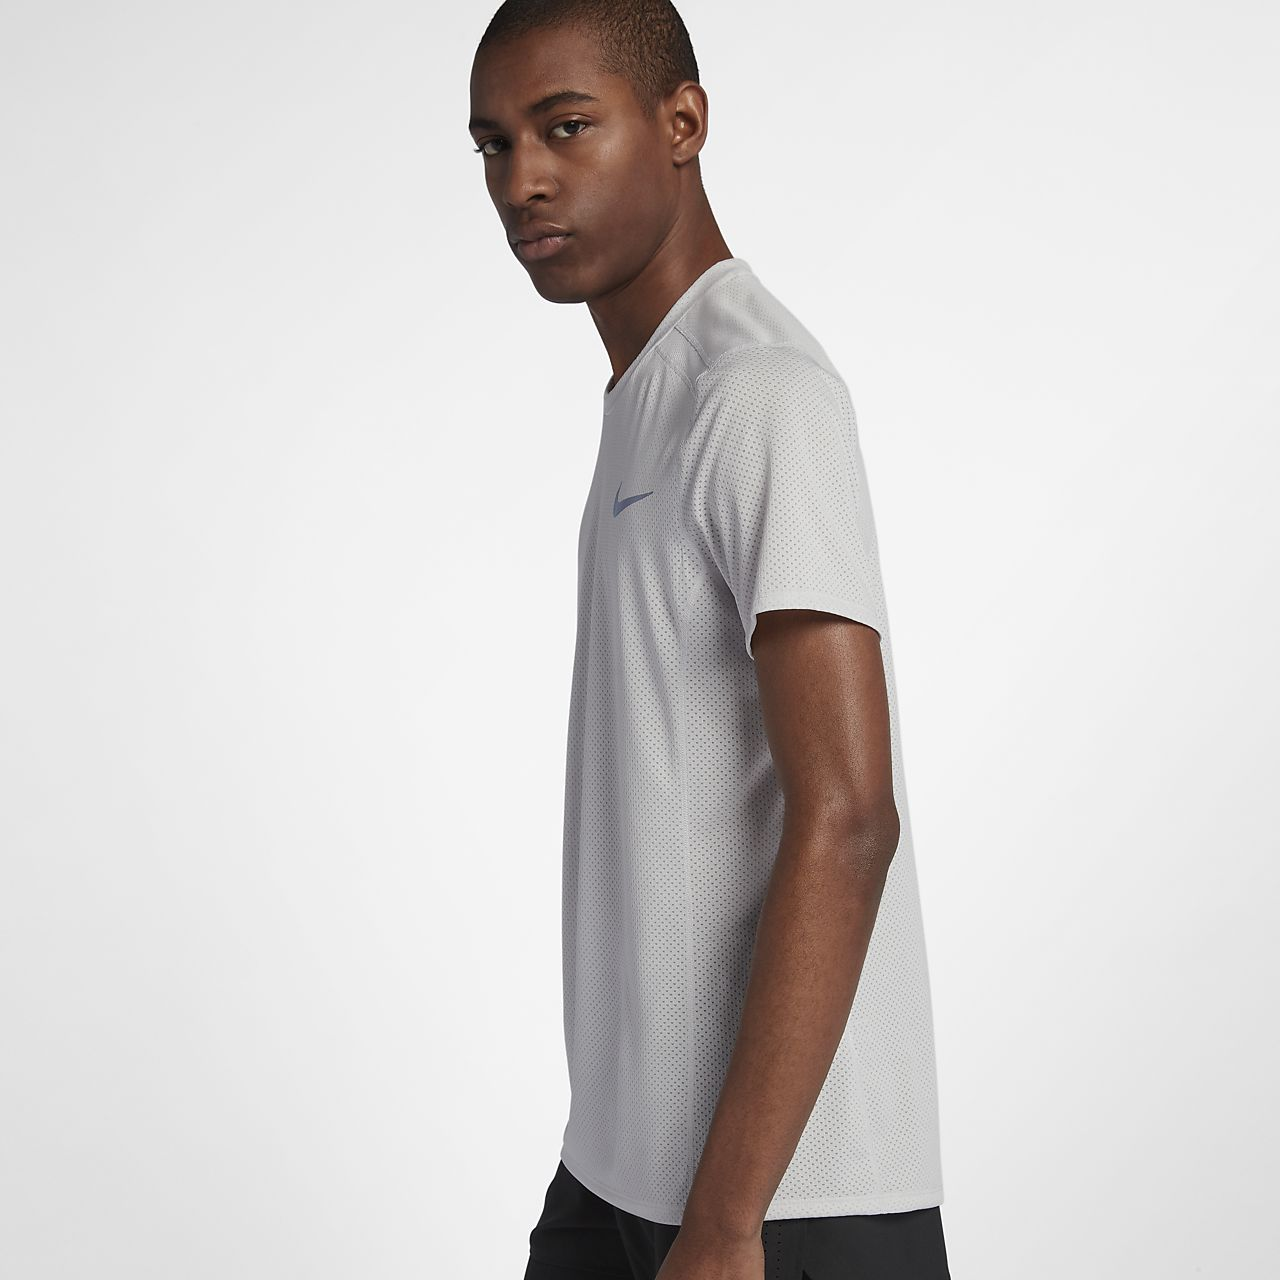 6ed107e7 Nike Dri-FIT Miler Cool Men's Short-Sleeve Running Top. Nike.com AU